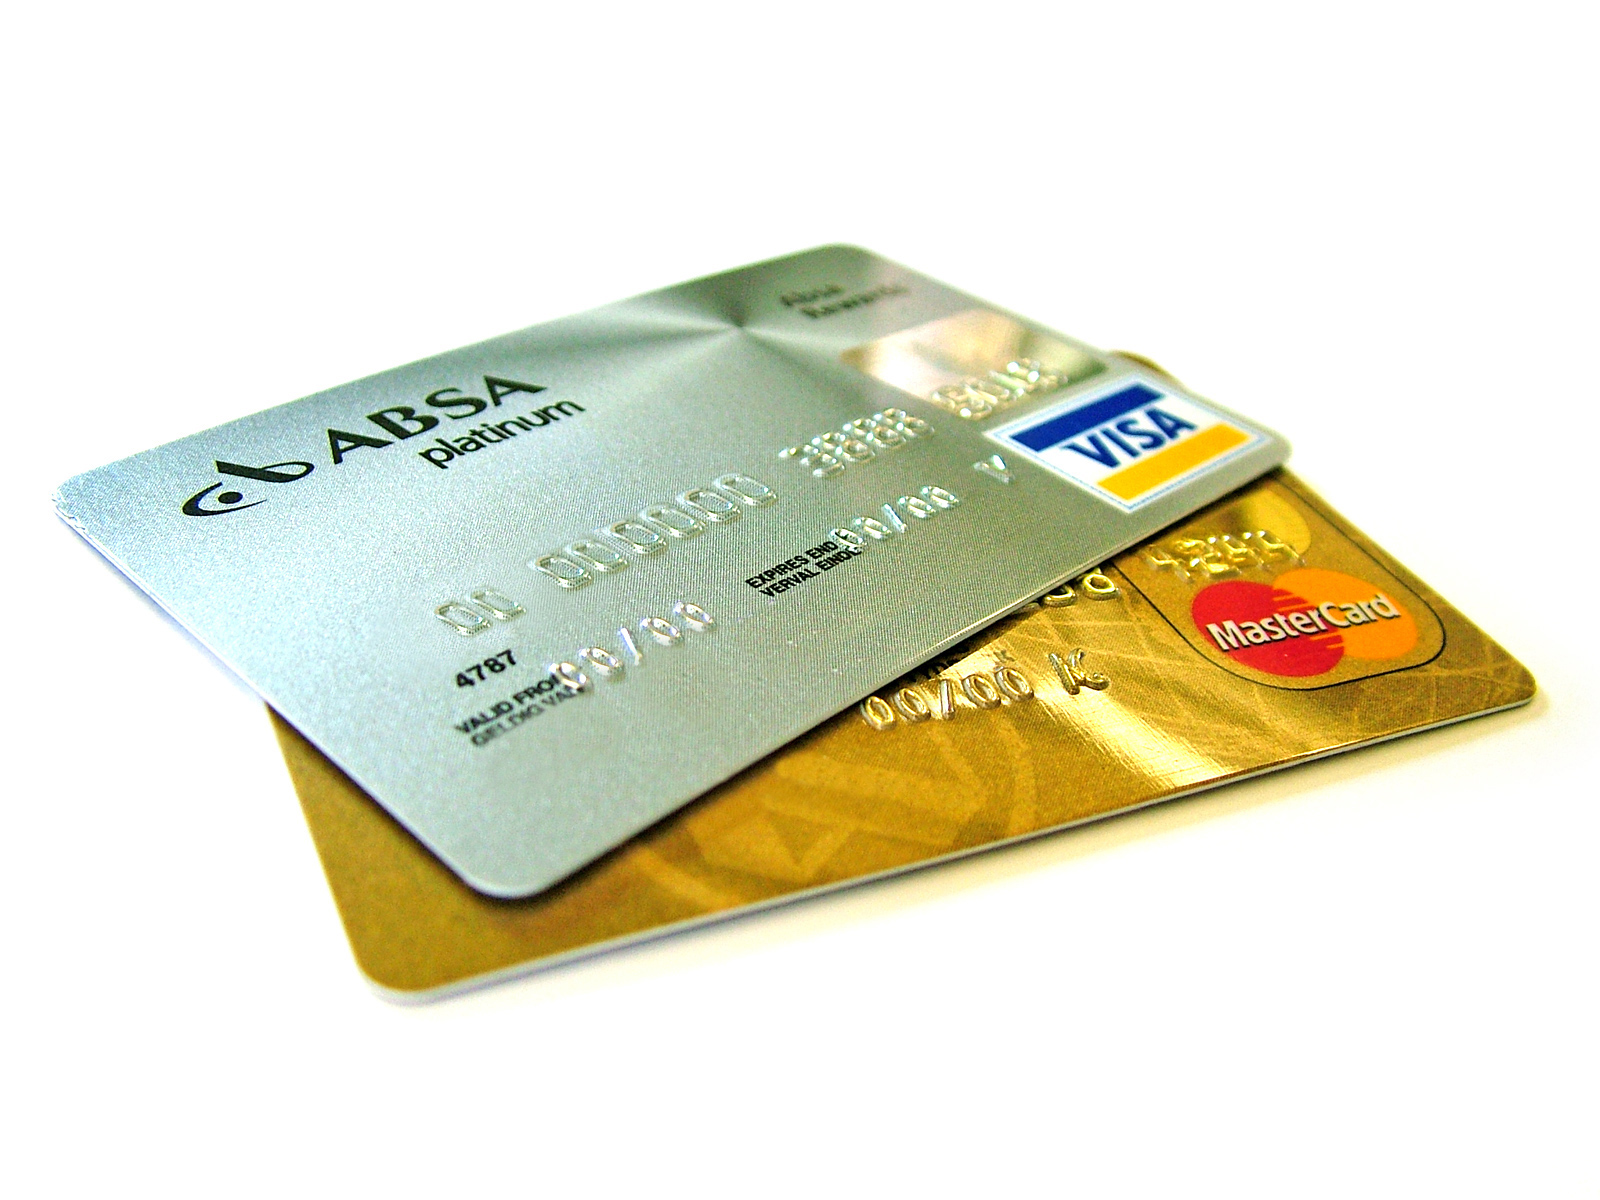 Depicts credit cards